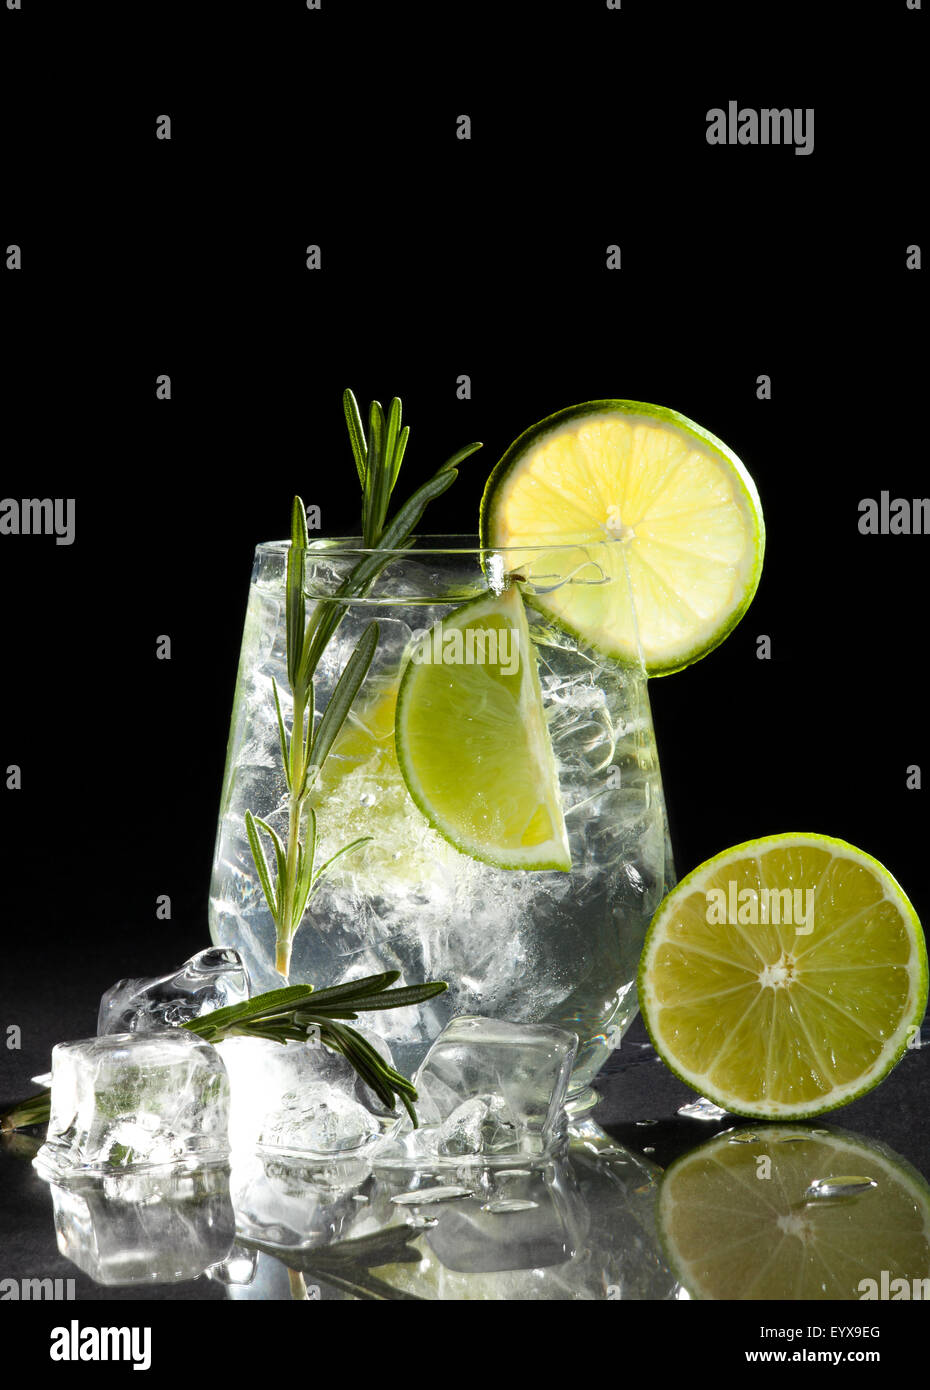 Glass with alcoholic drink with lime and ice on a black background. Stock Photo